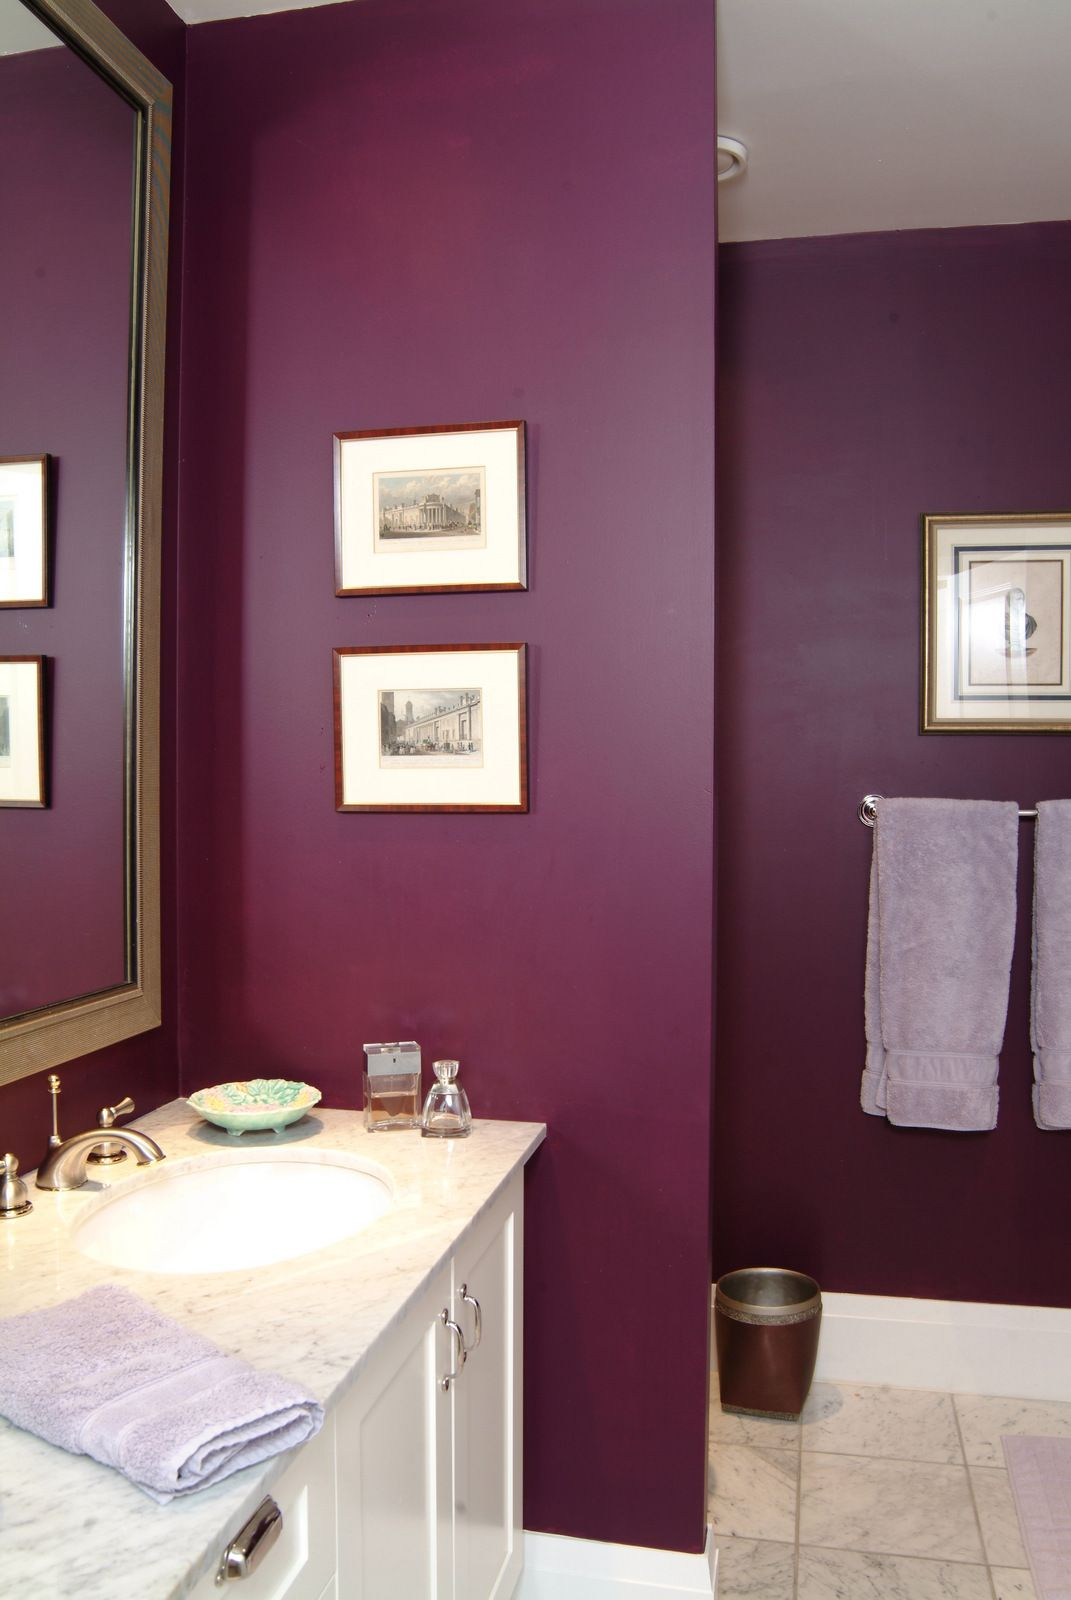 Pin By Tara Michelle On Paint Color Scheme Plum Purple From